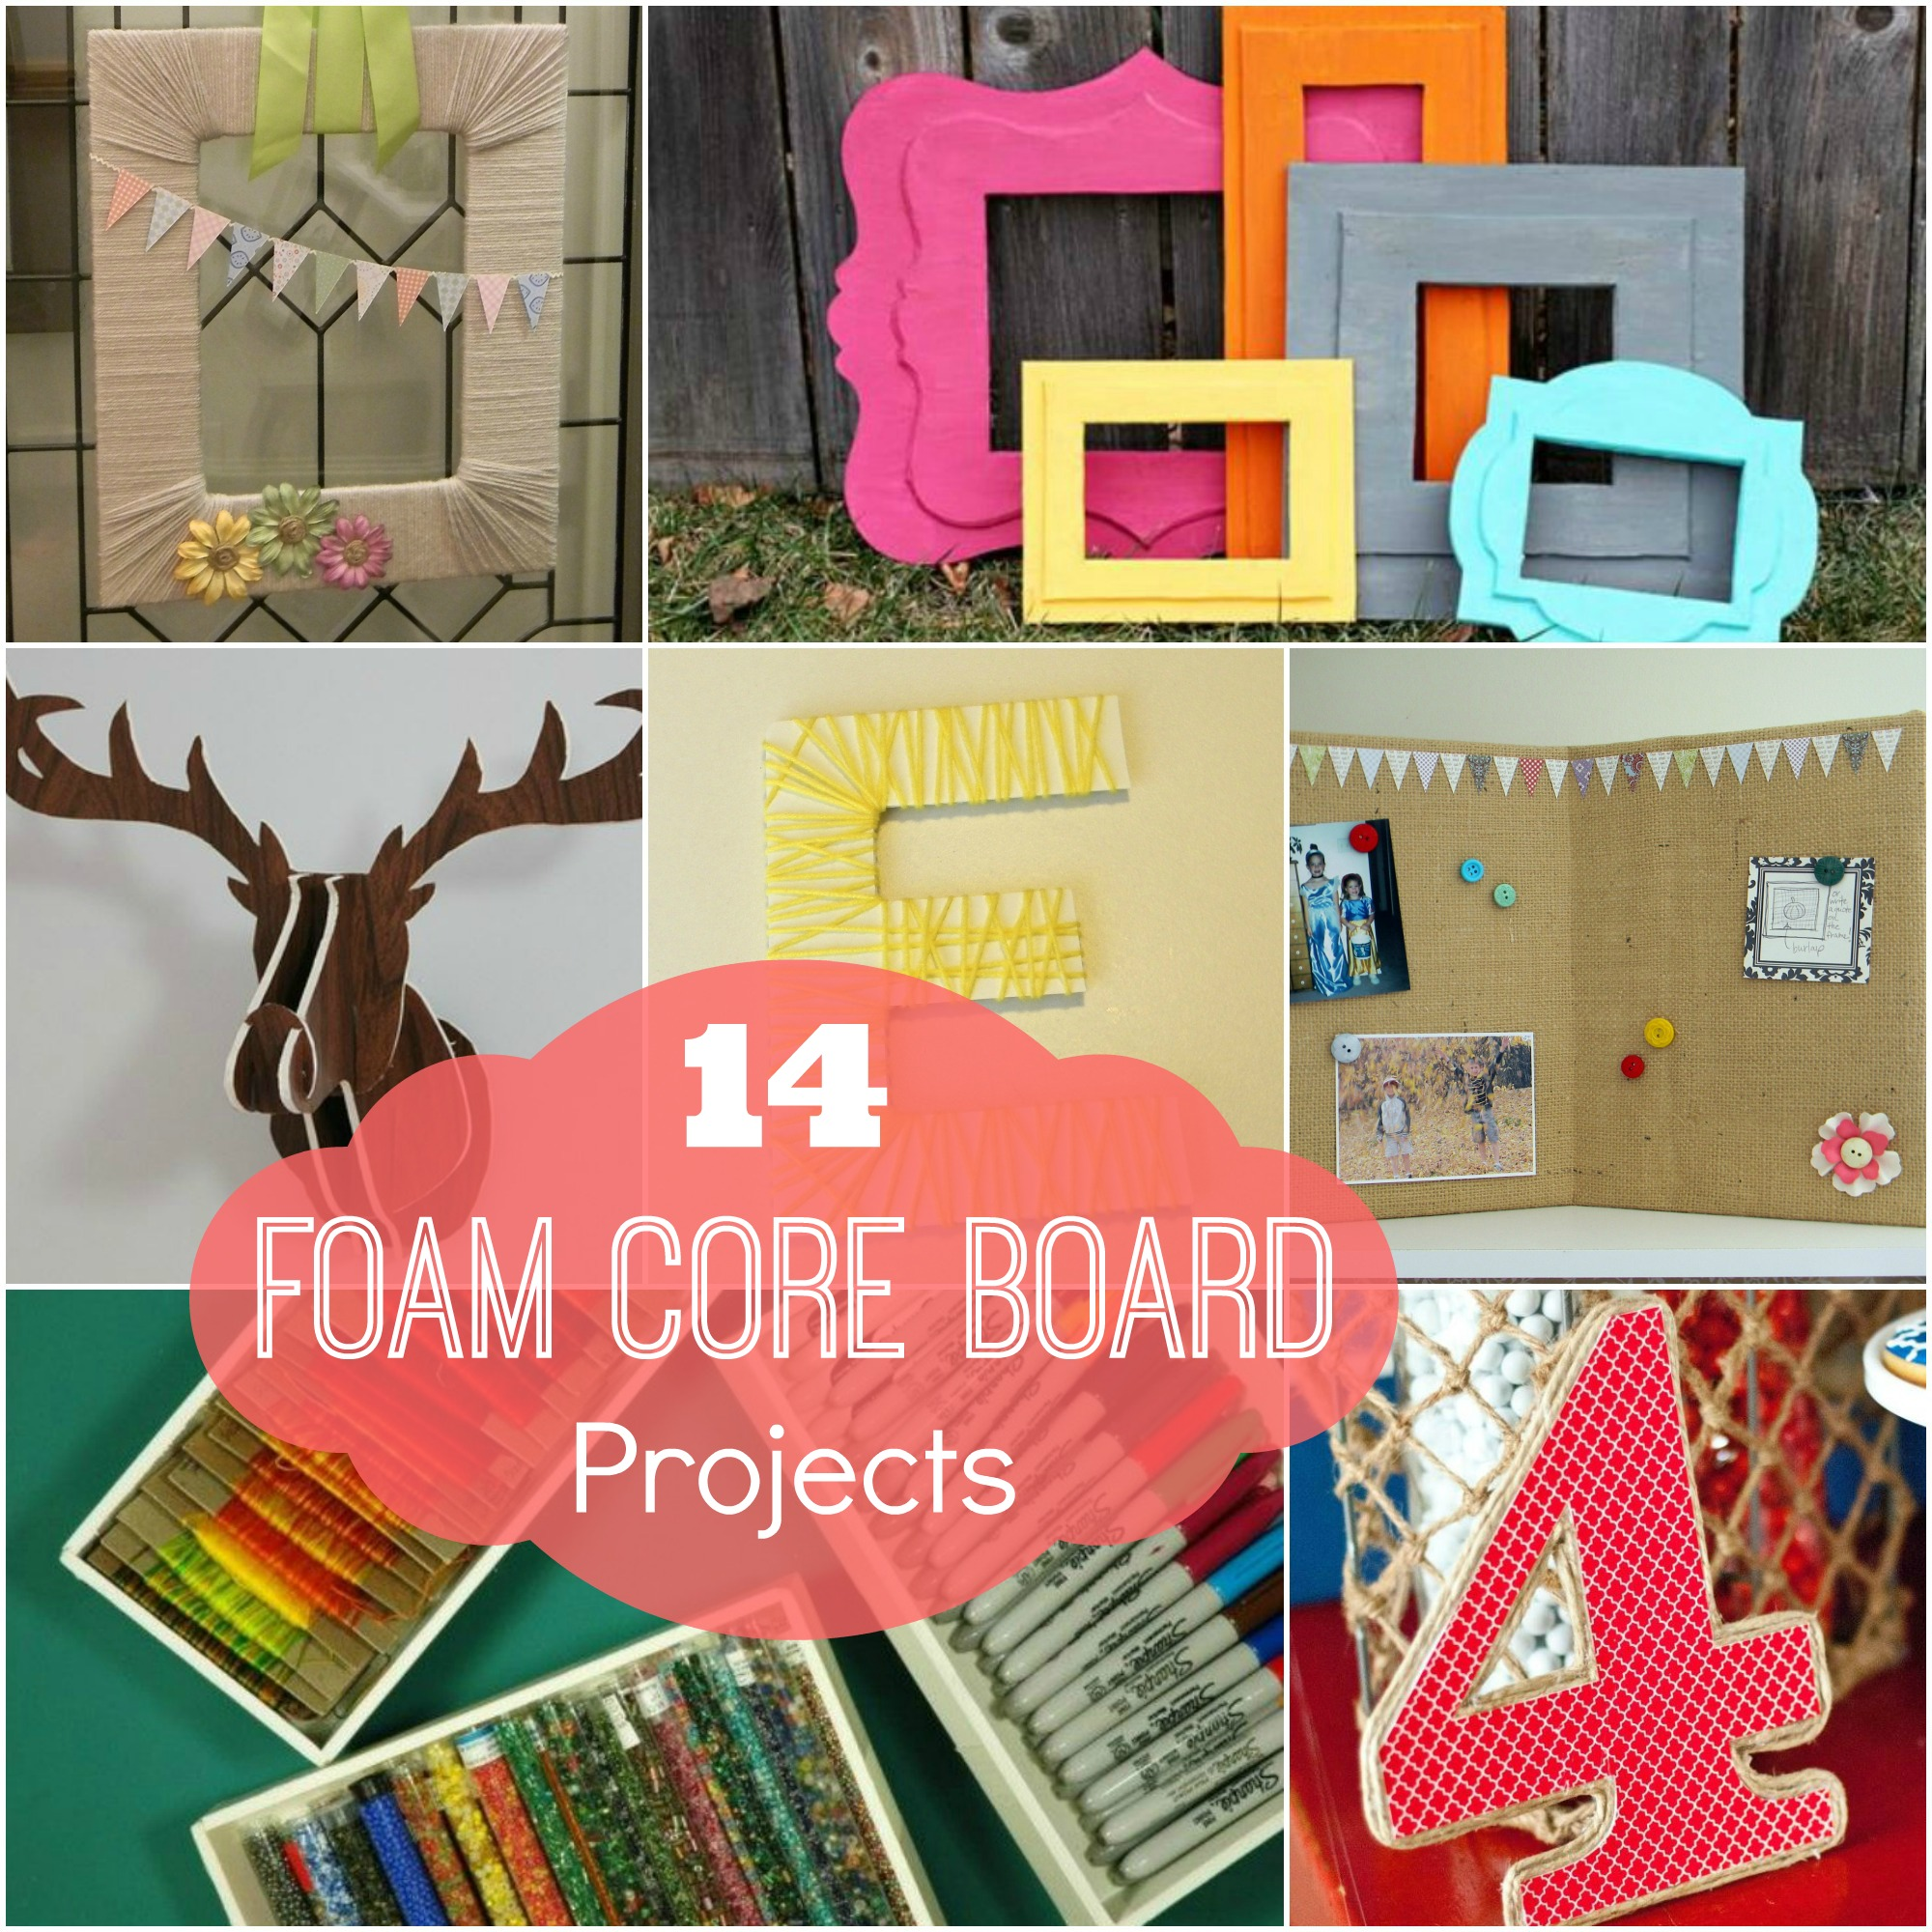 14 Foam Core Board Projects - Organize and Decorate Everything